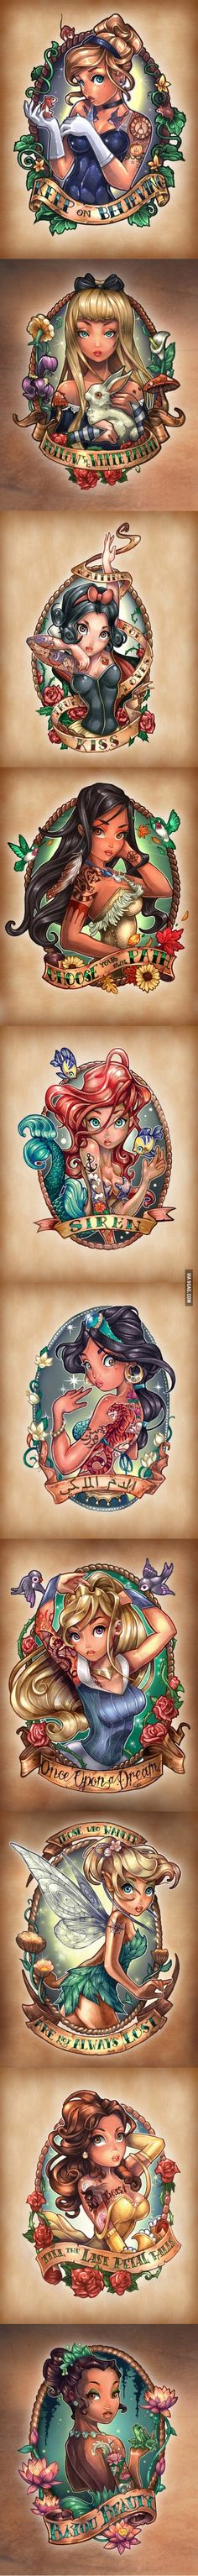 Disney Princesses As Fierce Vintage Tattooed Pin-Ups Oh my goodness are these gorgeous!!